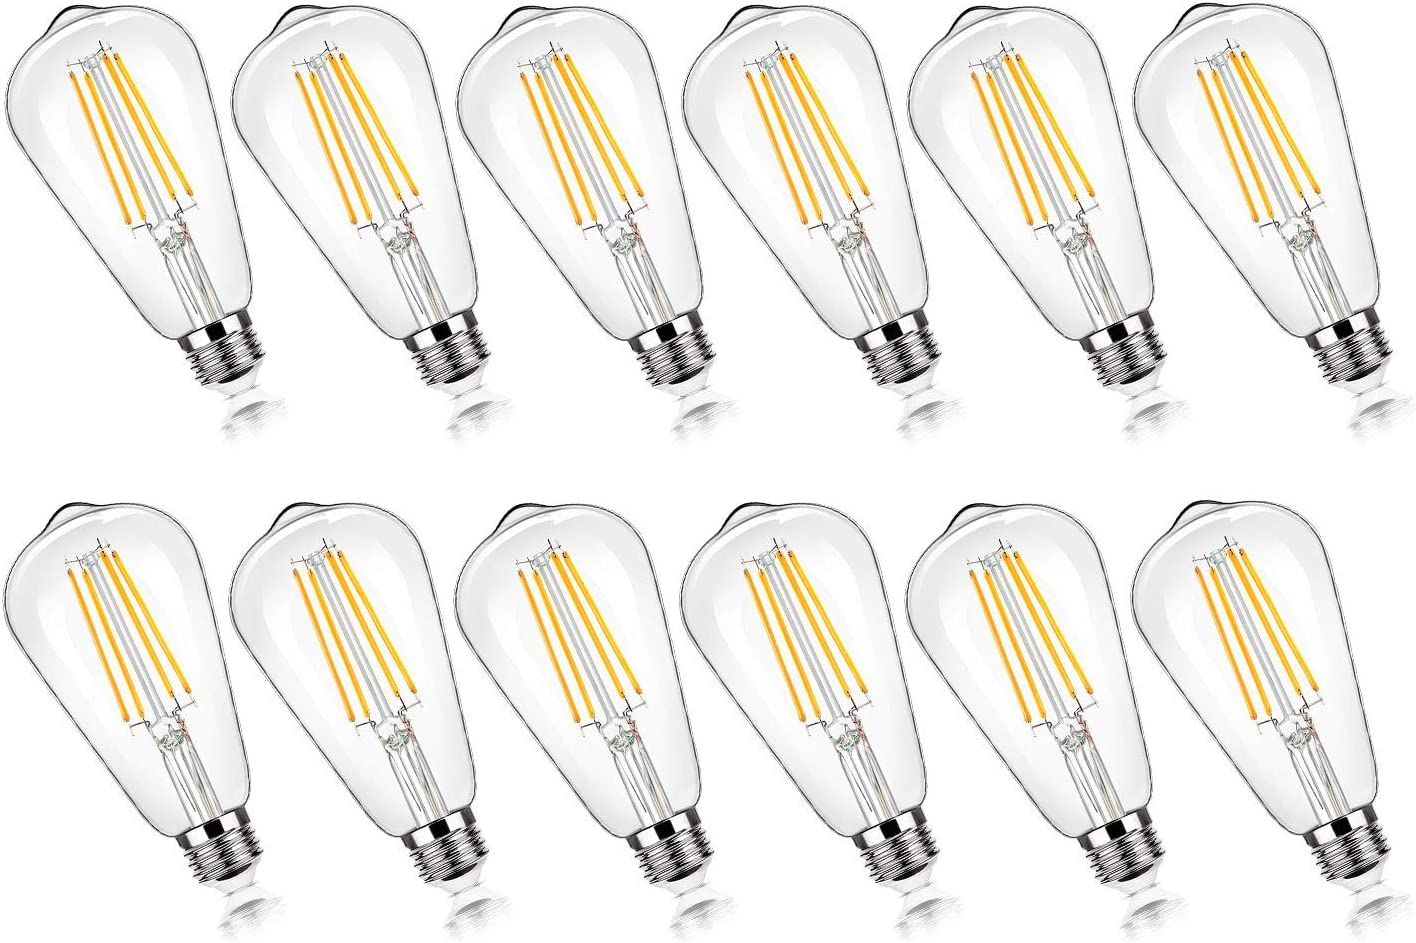 12-Pack Vintage 7W ST58 LED Edison Light Bulbs 60W Equivalent, 850Lumens, 3000K Soft Warm White, E26 Base LED Filament Bulbs, CRI90+, Antique Glass Style Great for Home, Bedroom, Office, Non-Dimmable